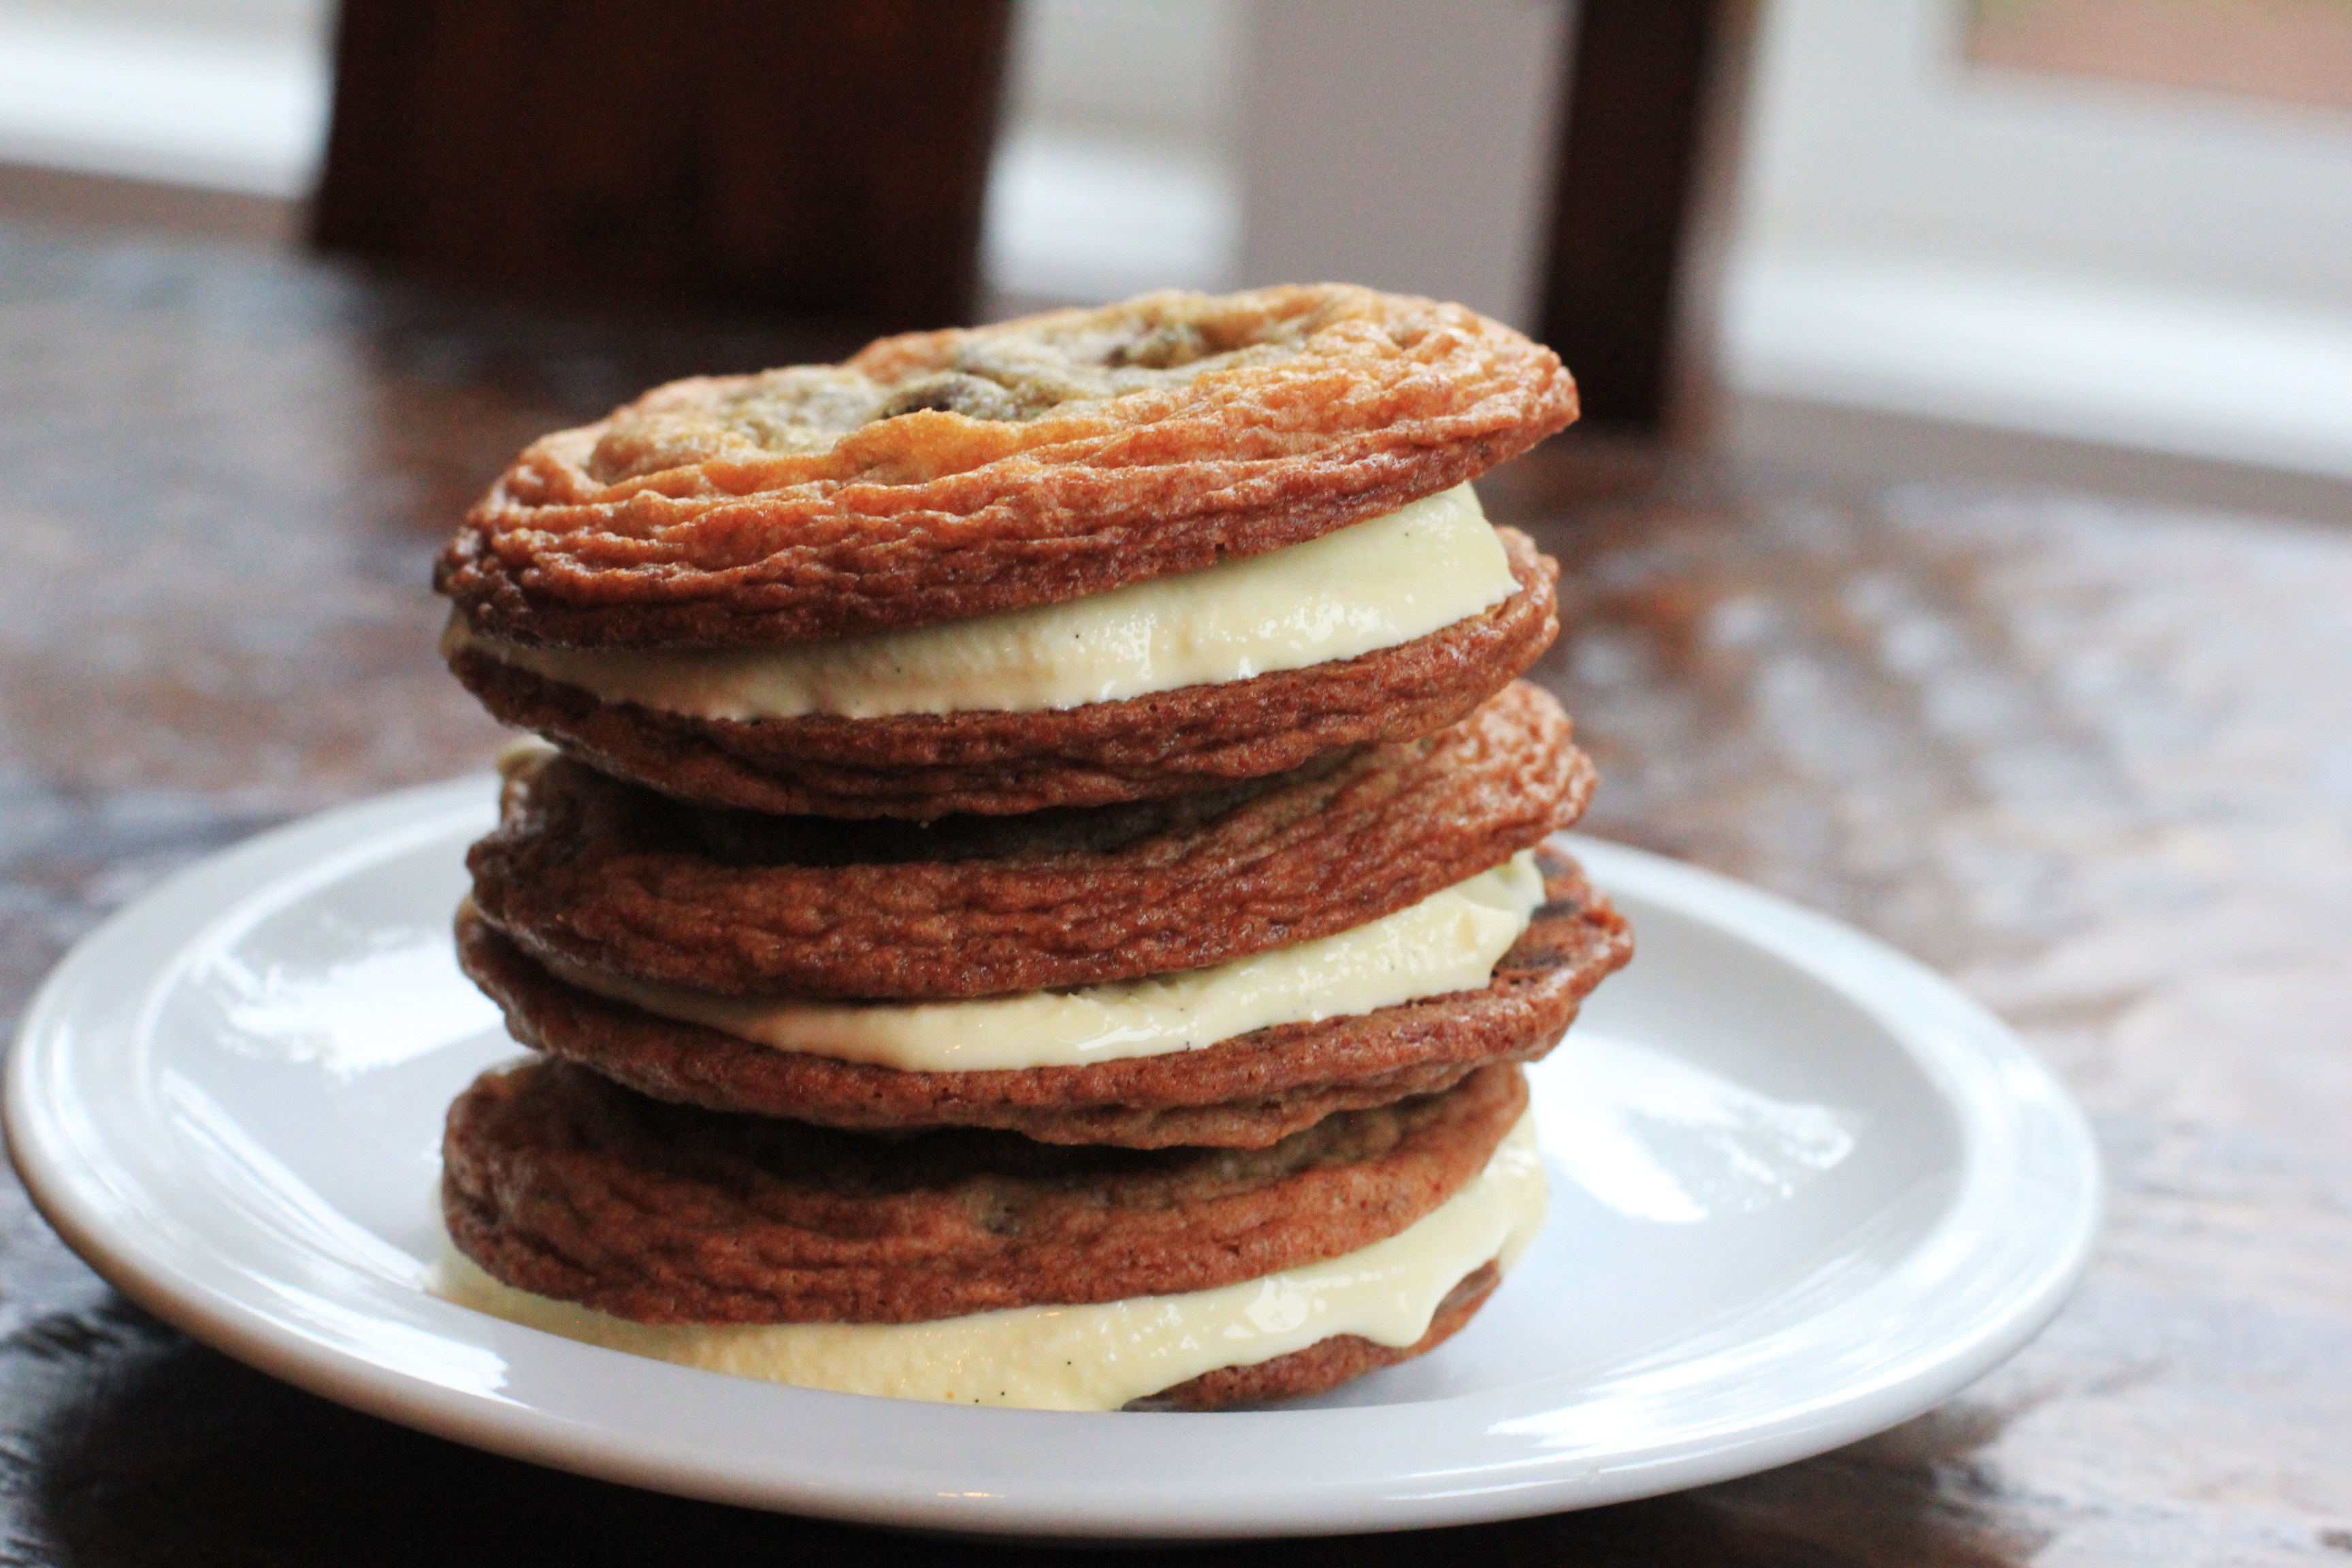 Recipe: Chocolate Chip Ice Cream Sandwiches